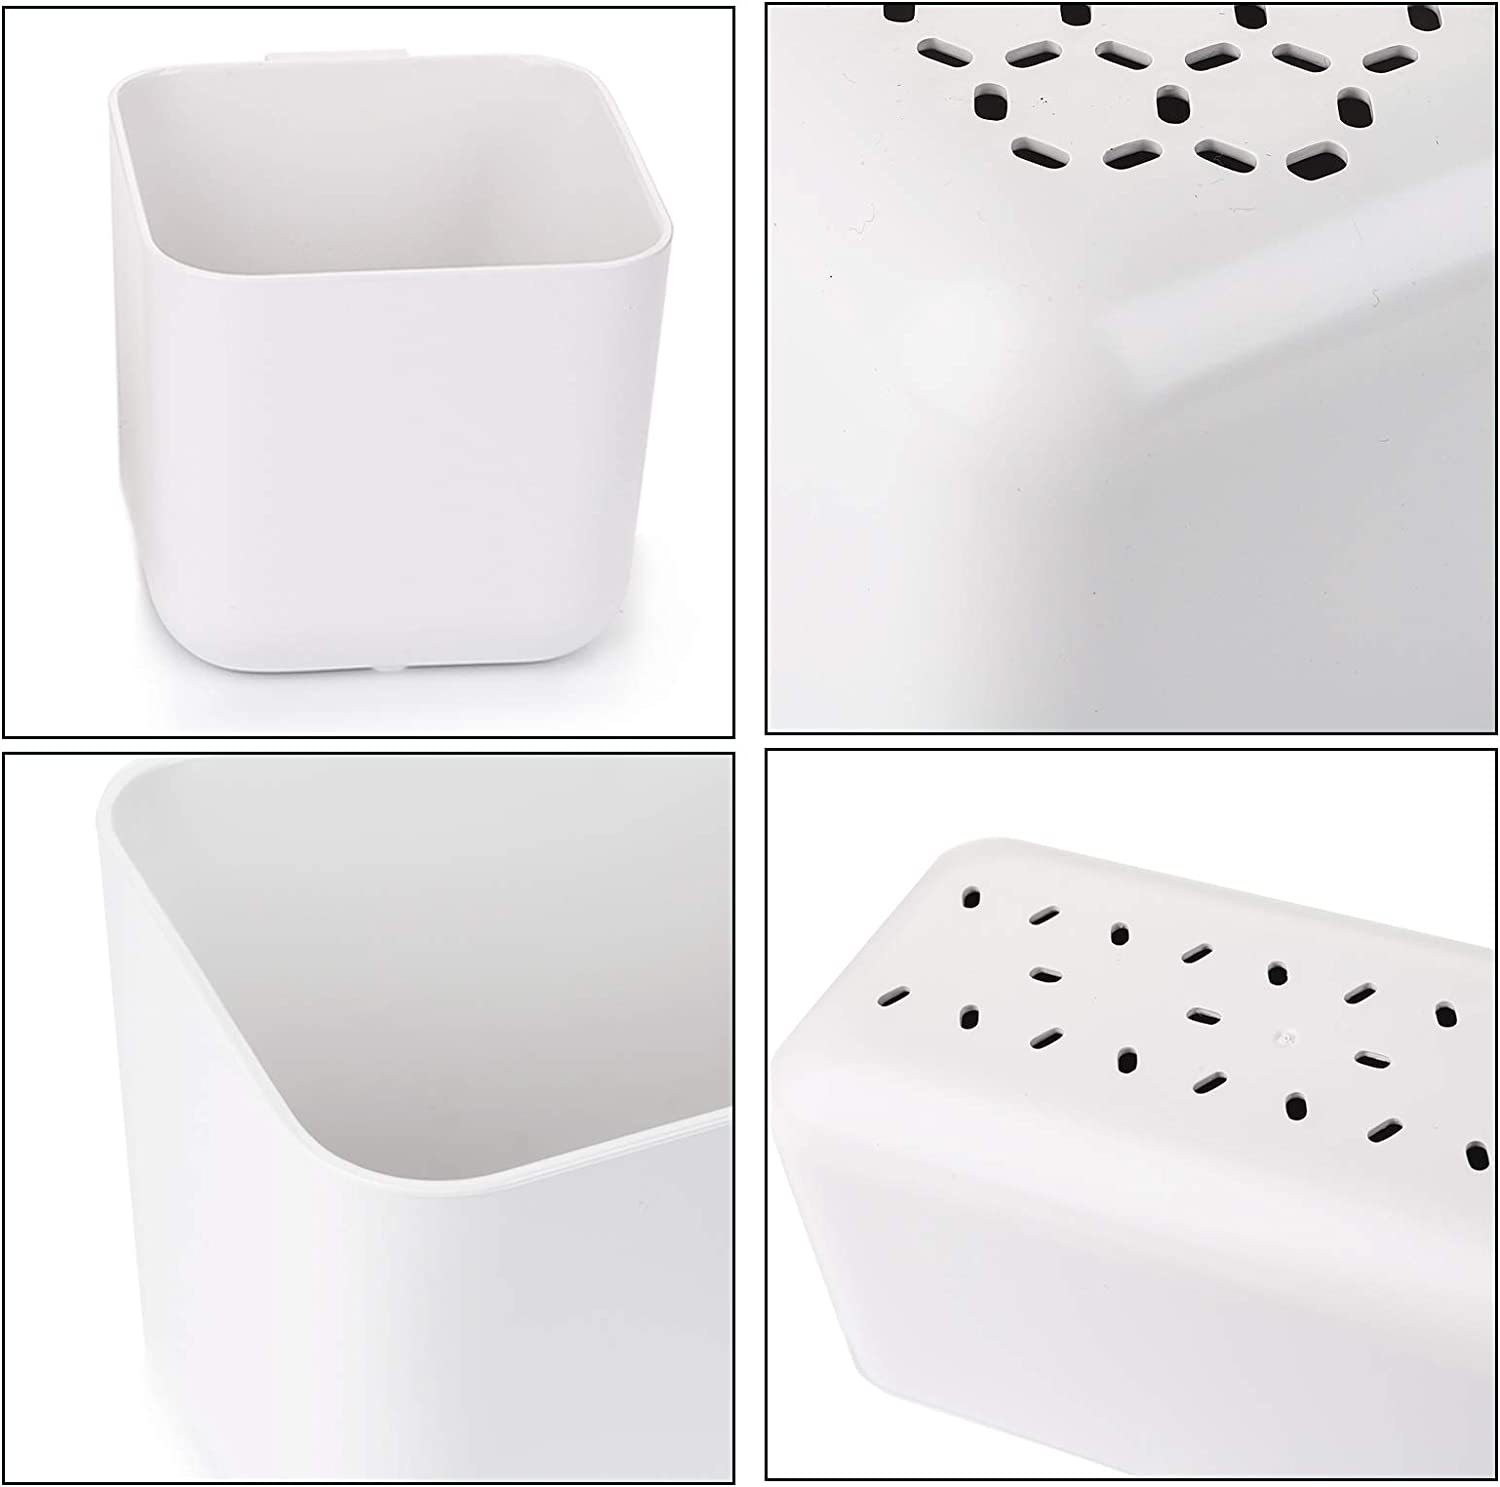 Self-Adhesive Organizer Storage Box for Table and Nightstand White Suwimut 4 Pack Hole-Free Remote Holder Wall Mount